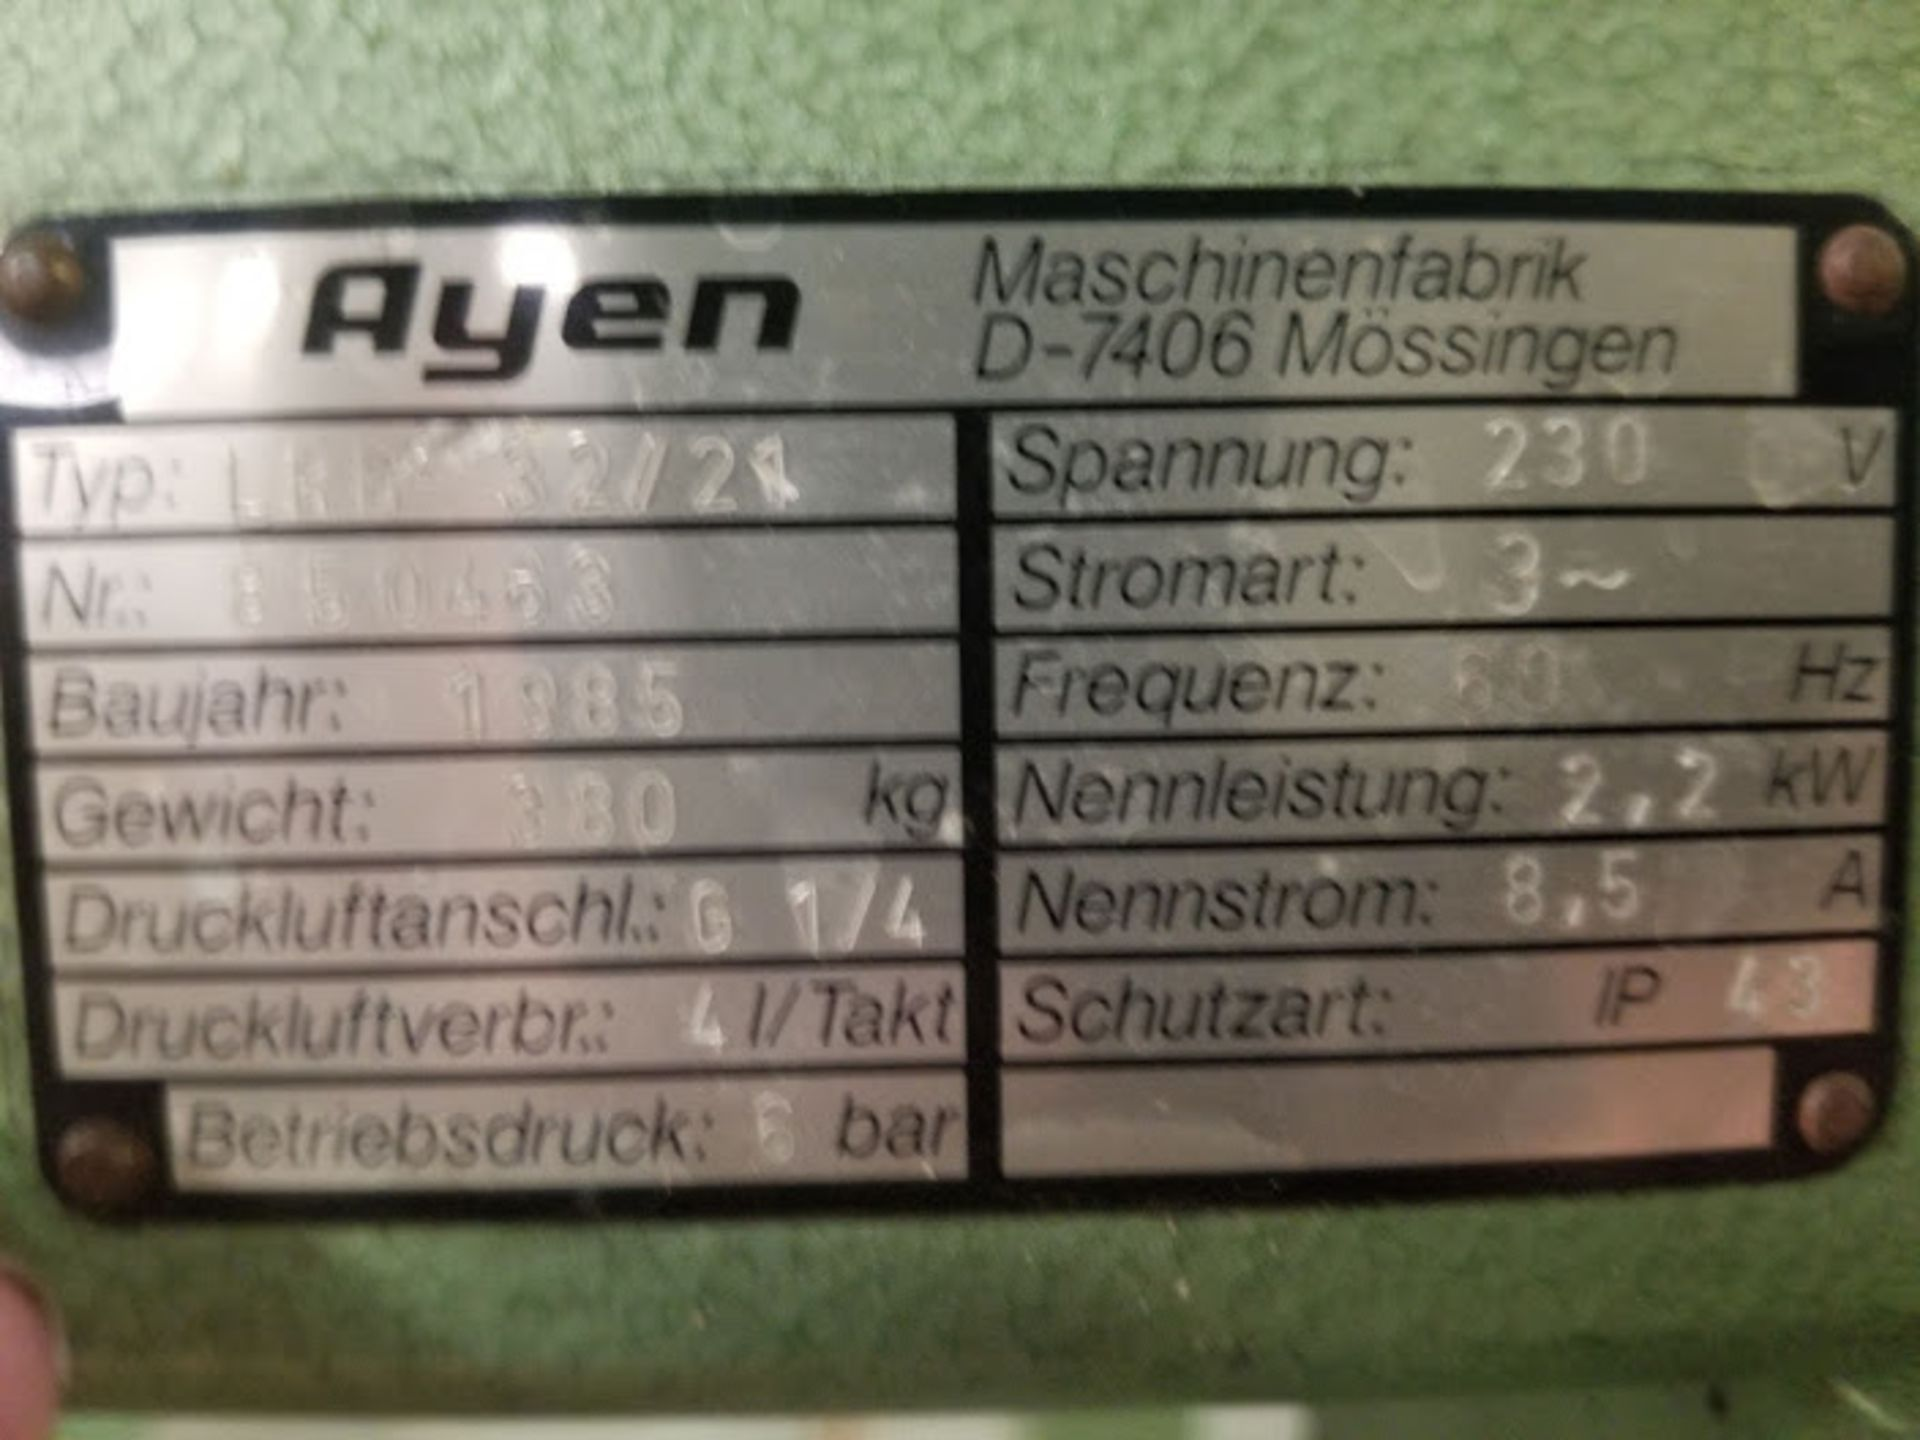 Ayen21 Spindle Line Boring Machine, Type#: LRB32/21, 230 Volts 3Phase - Image 3 of 4